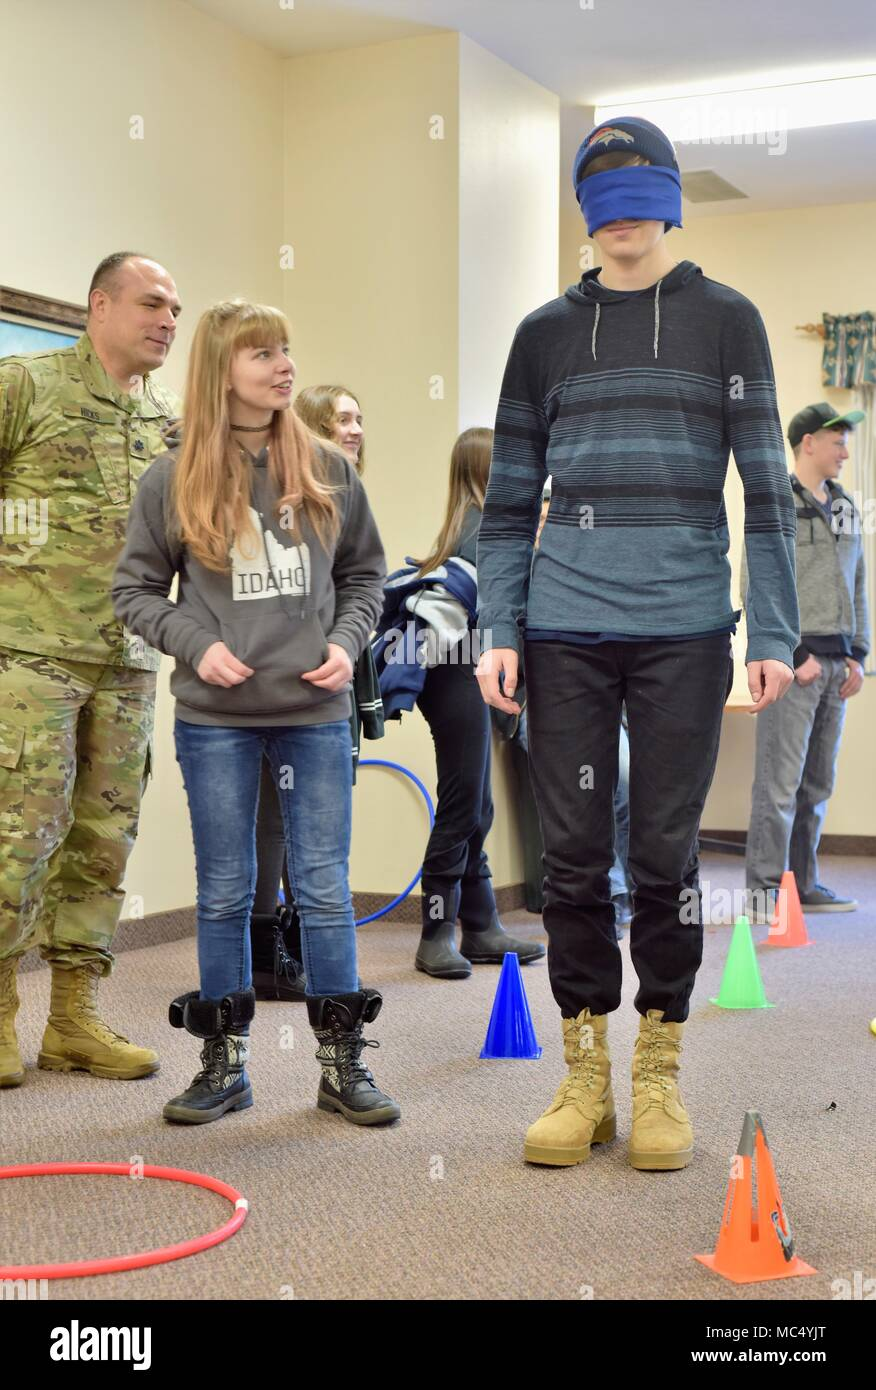 Sara Darney leads Skyler Rash through an obstacle course during the Idaho National Guard Child and Youth Services' Snow Bash event mid-January. The course teaches military children that they aren't alone and to trust each other. - Stock Image